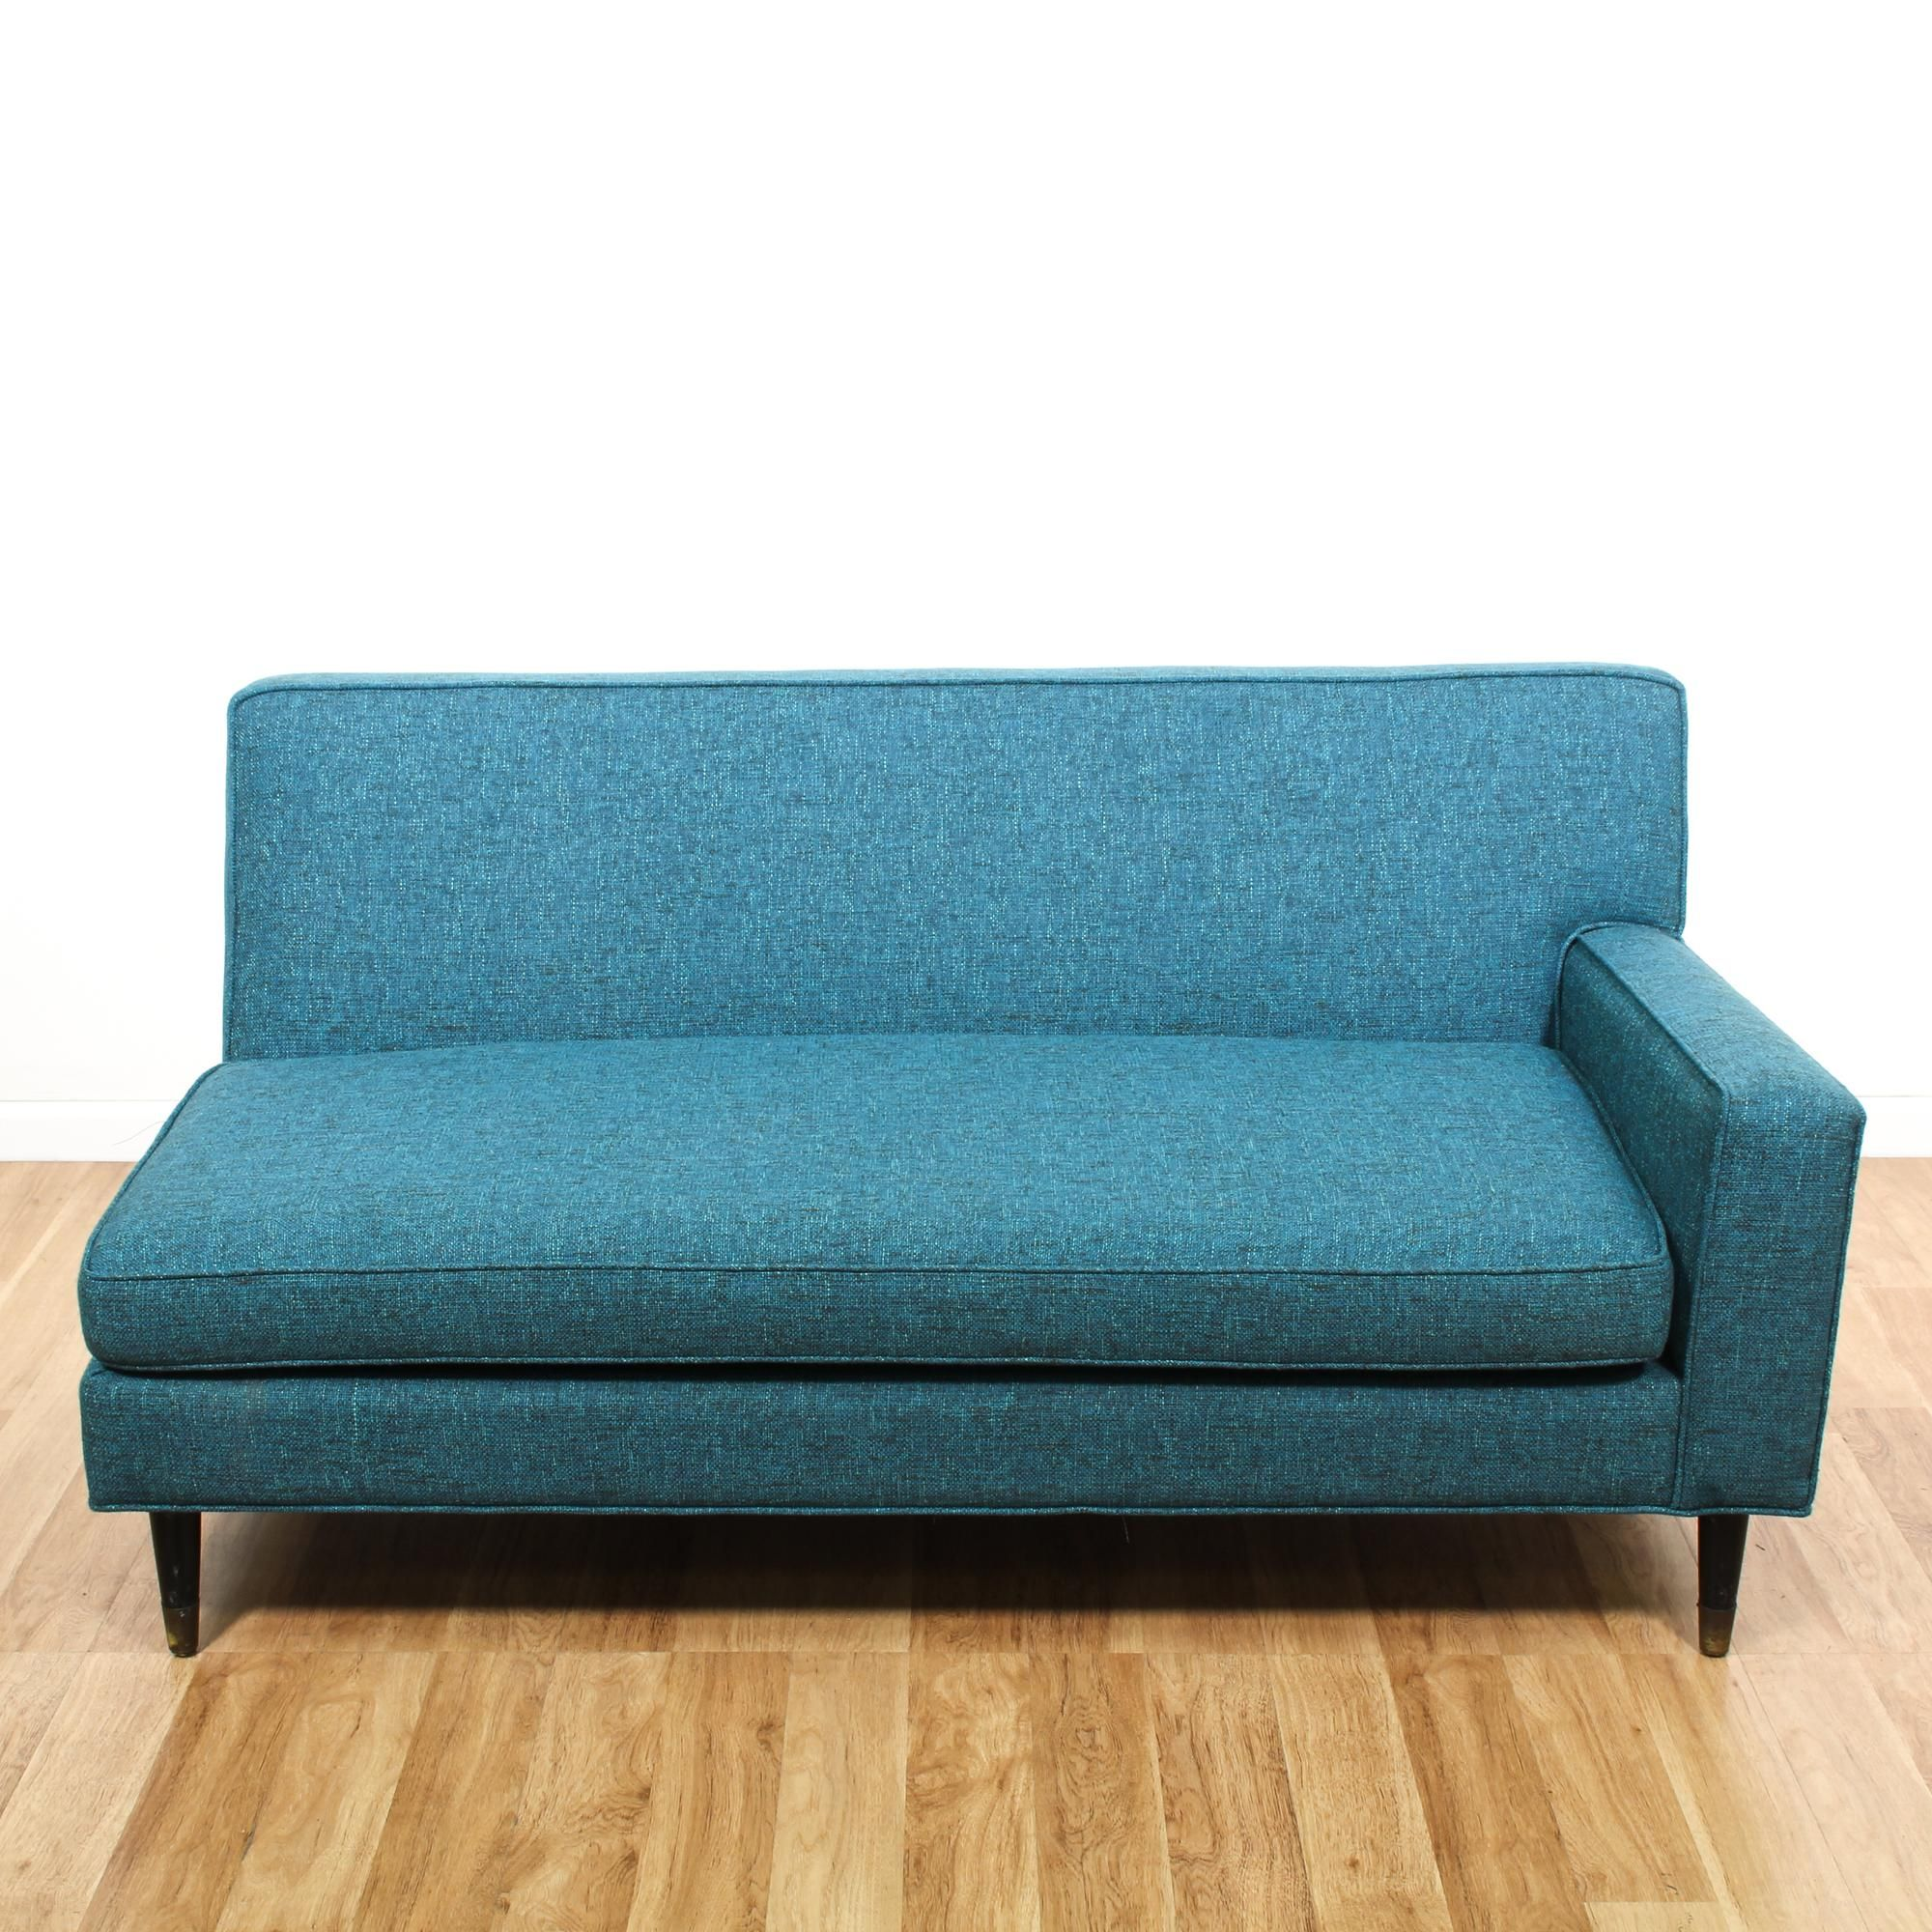 Newly Reupholstered Blue Mid Century Modern Sofa 2